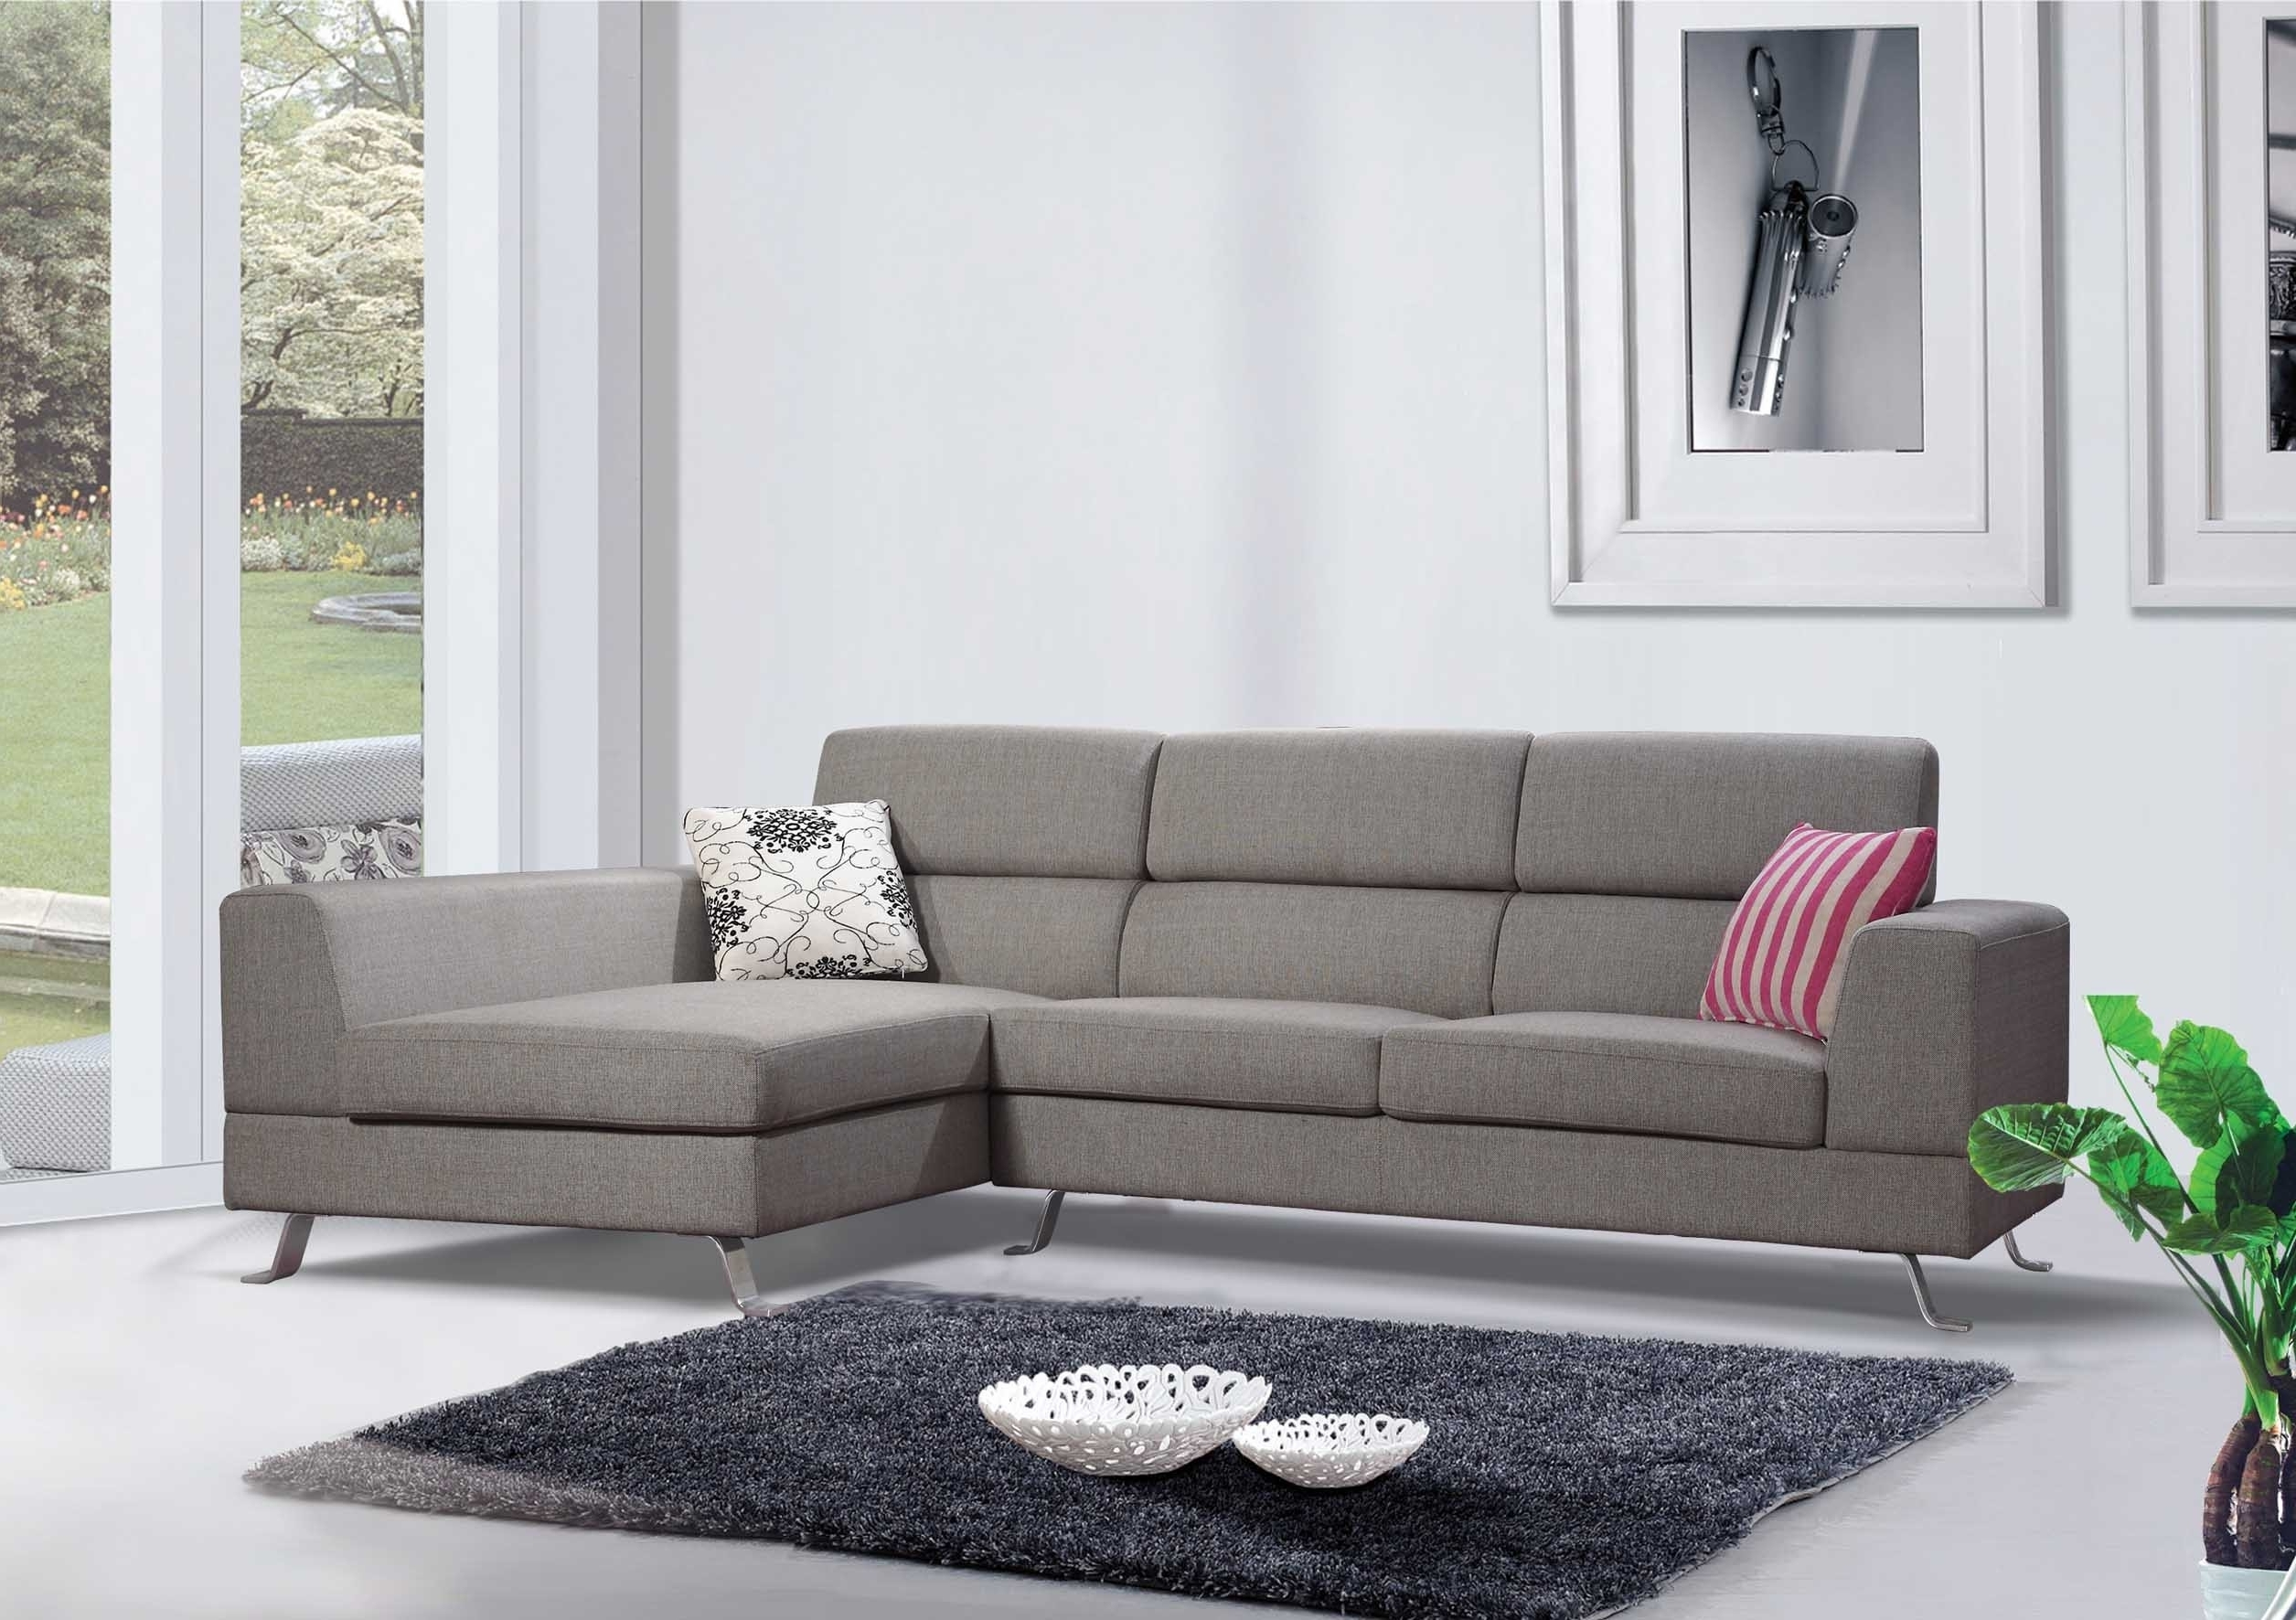 Preferred 96x96 Sectional Sofas Intended For Furniture : Microfiber Costco Sectional Sofa Furnitures (View 18 of 20)